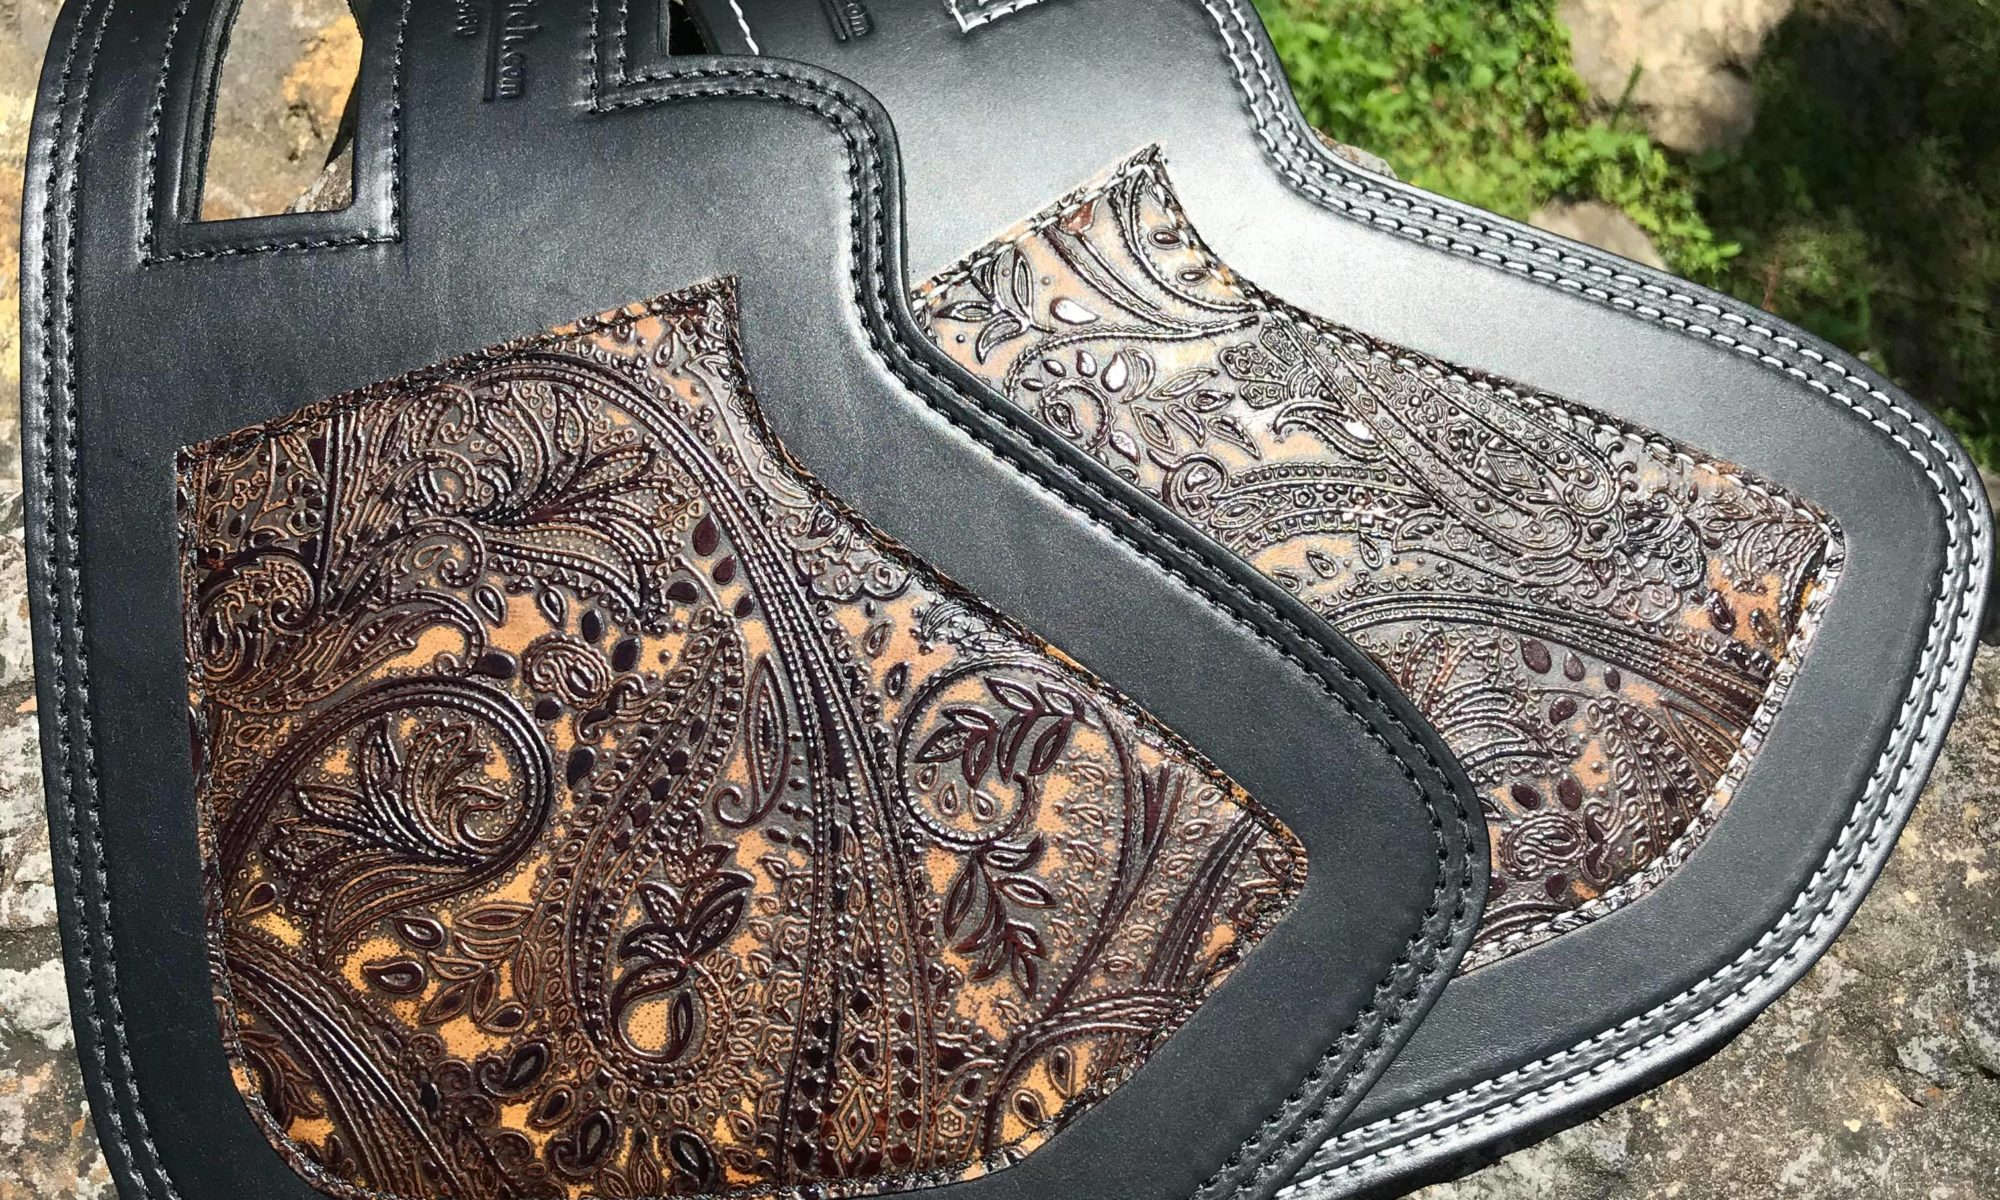 Indian heat protector with Leather and Lace overlay